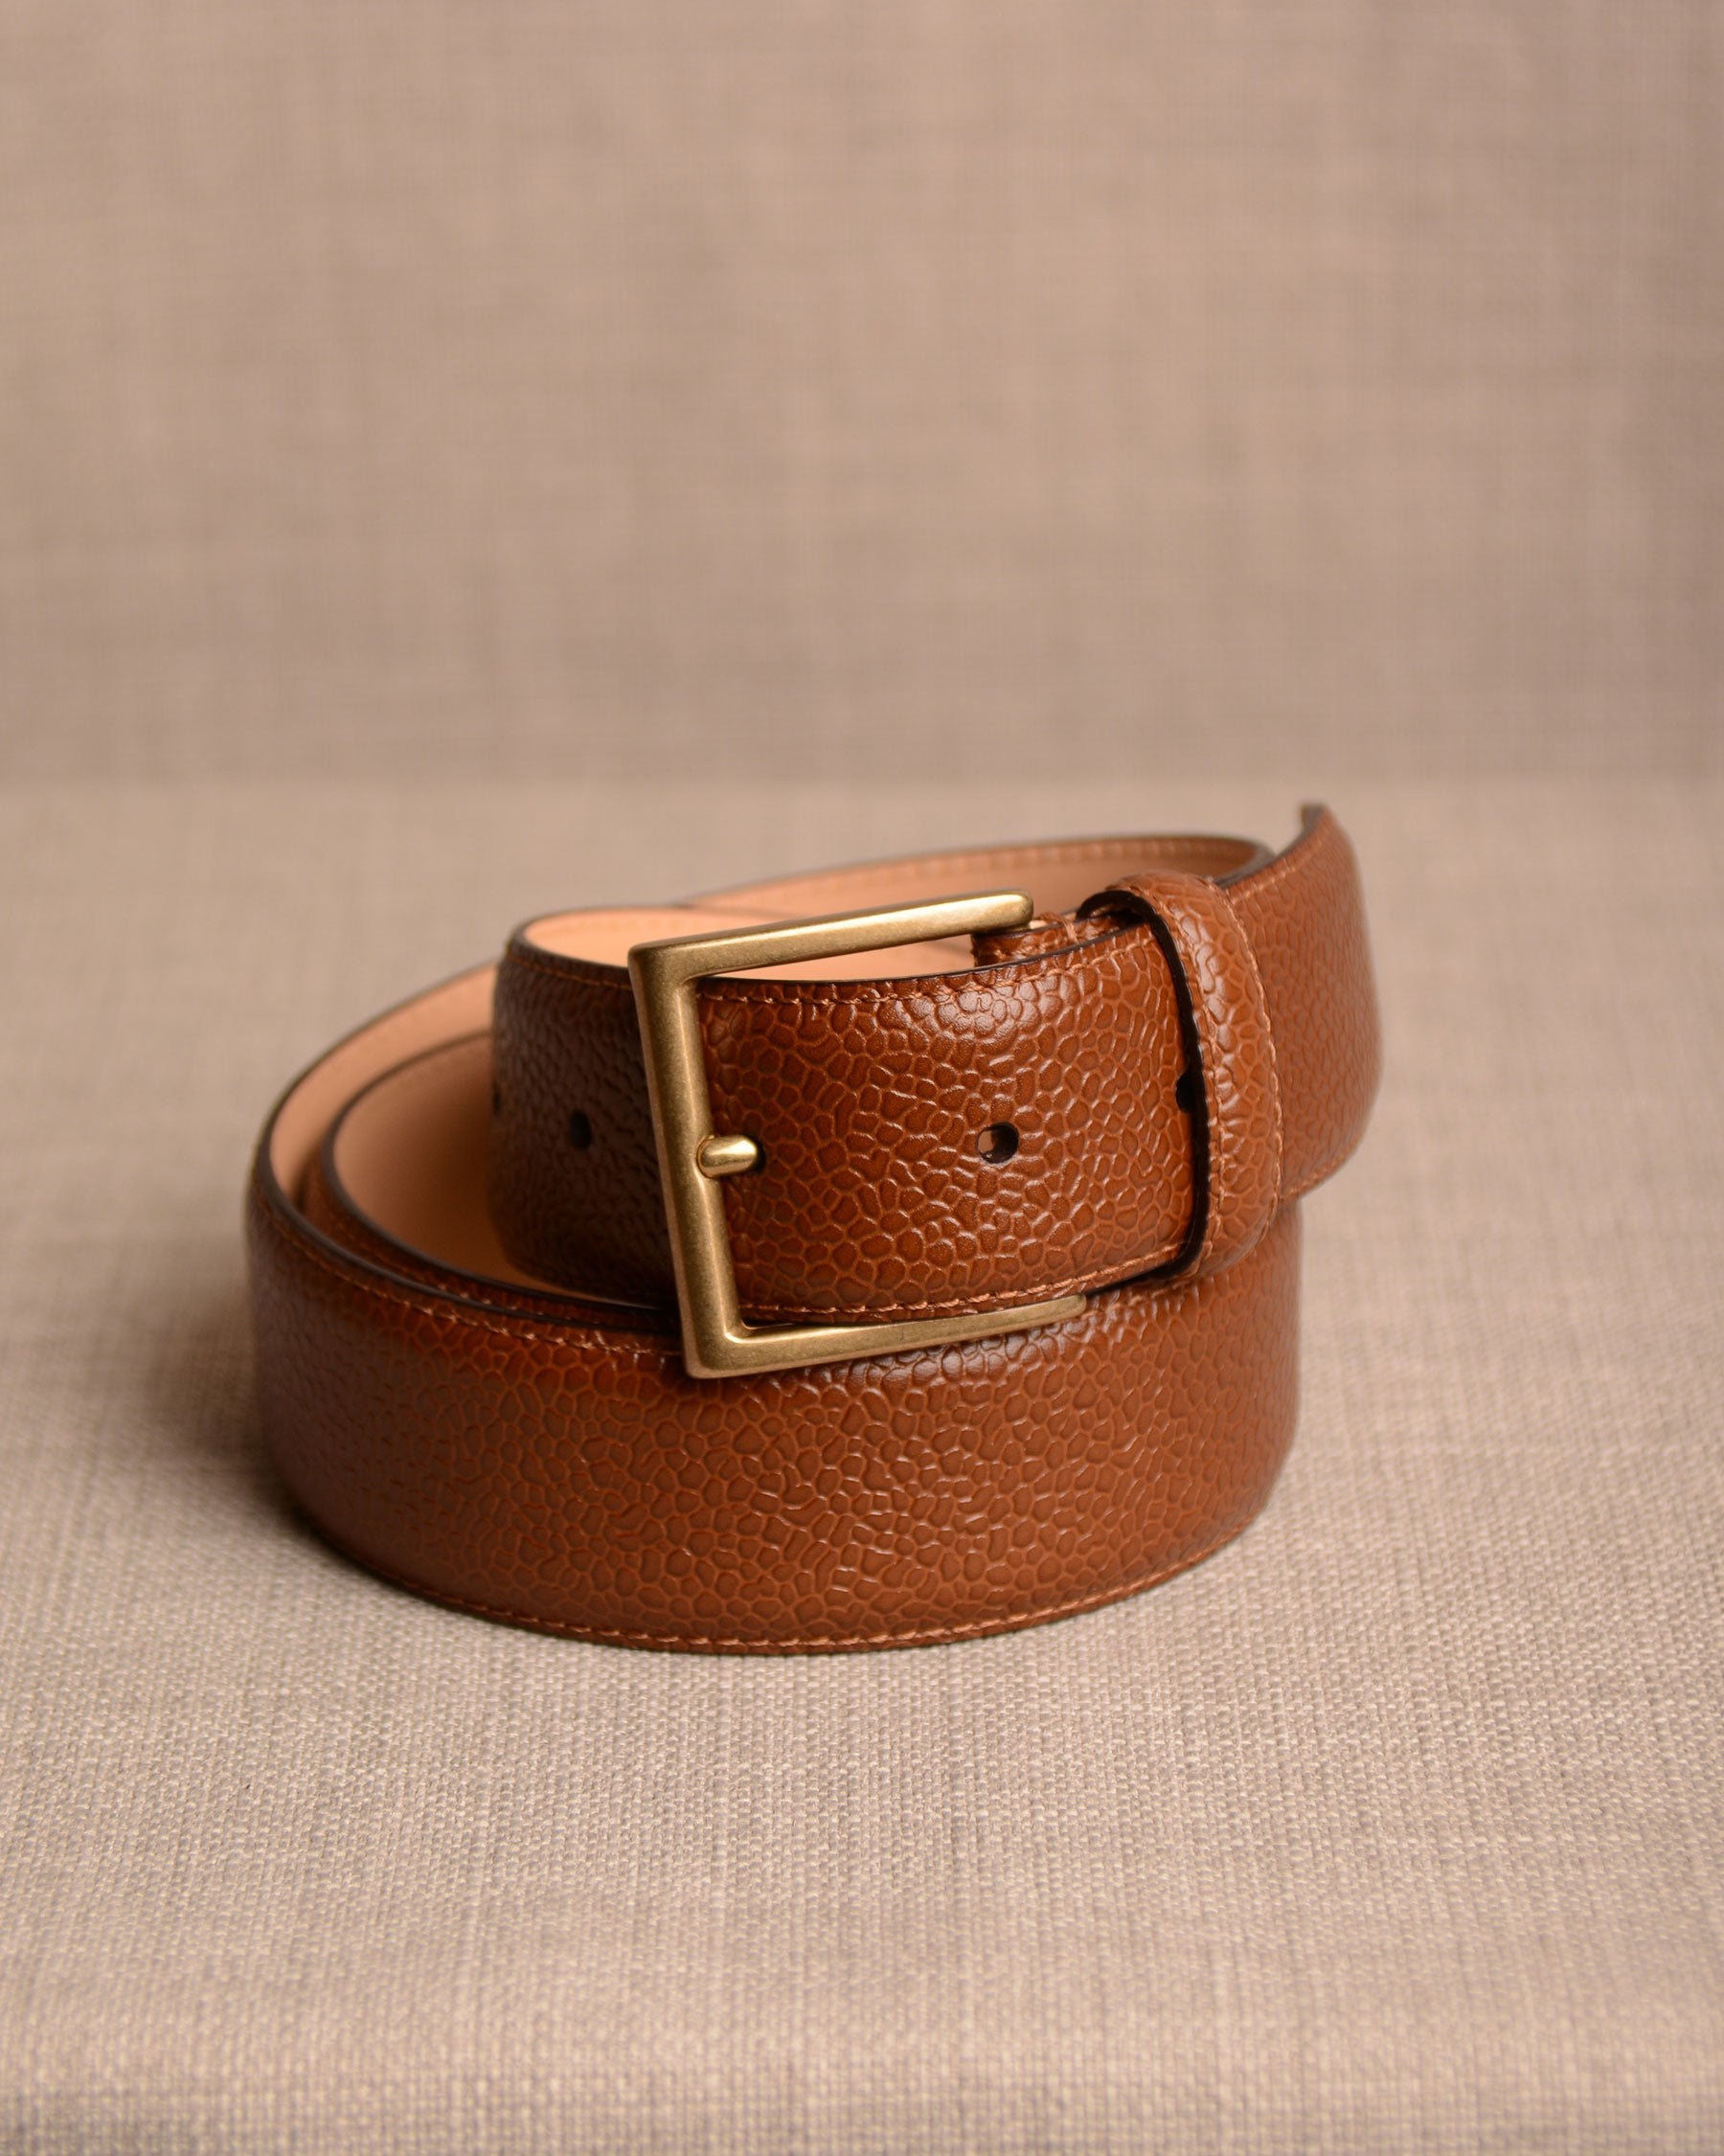 Crockett & Jones - Belt Tan Grain